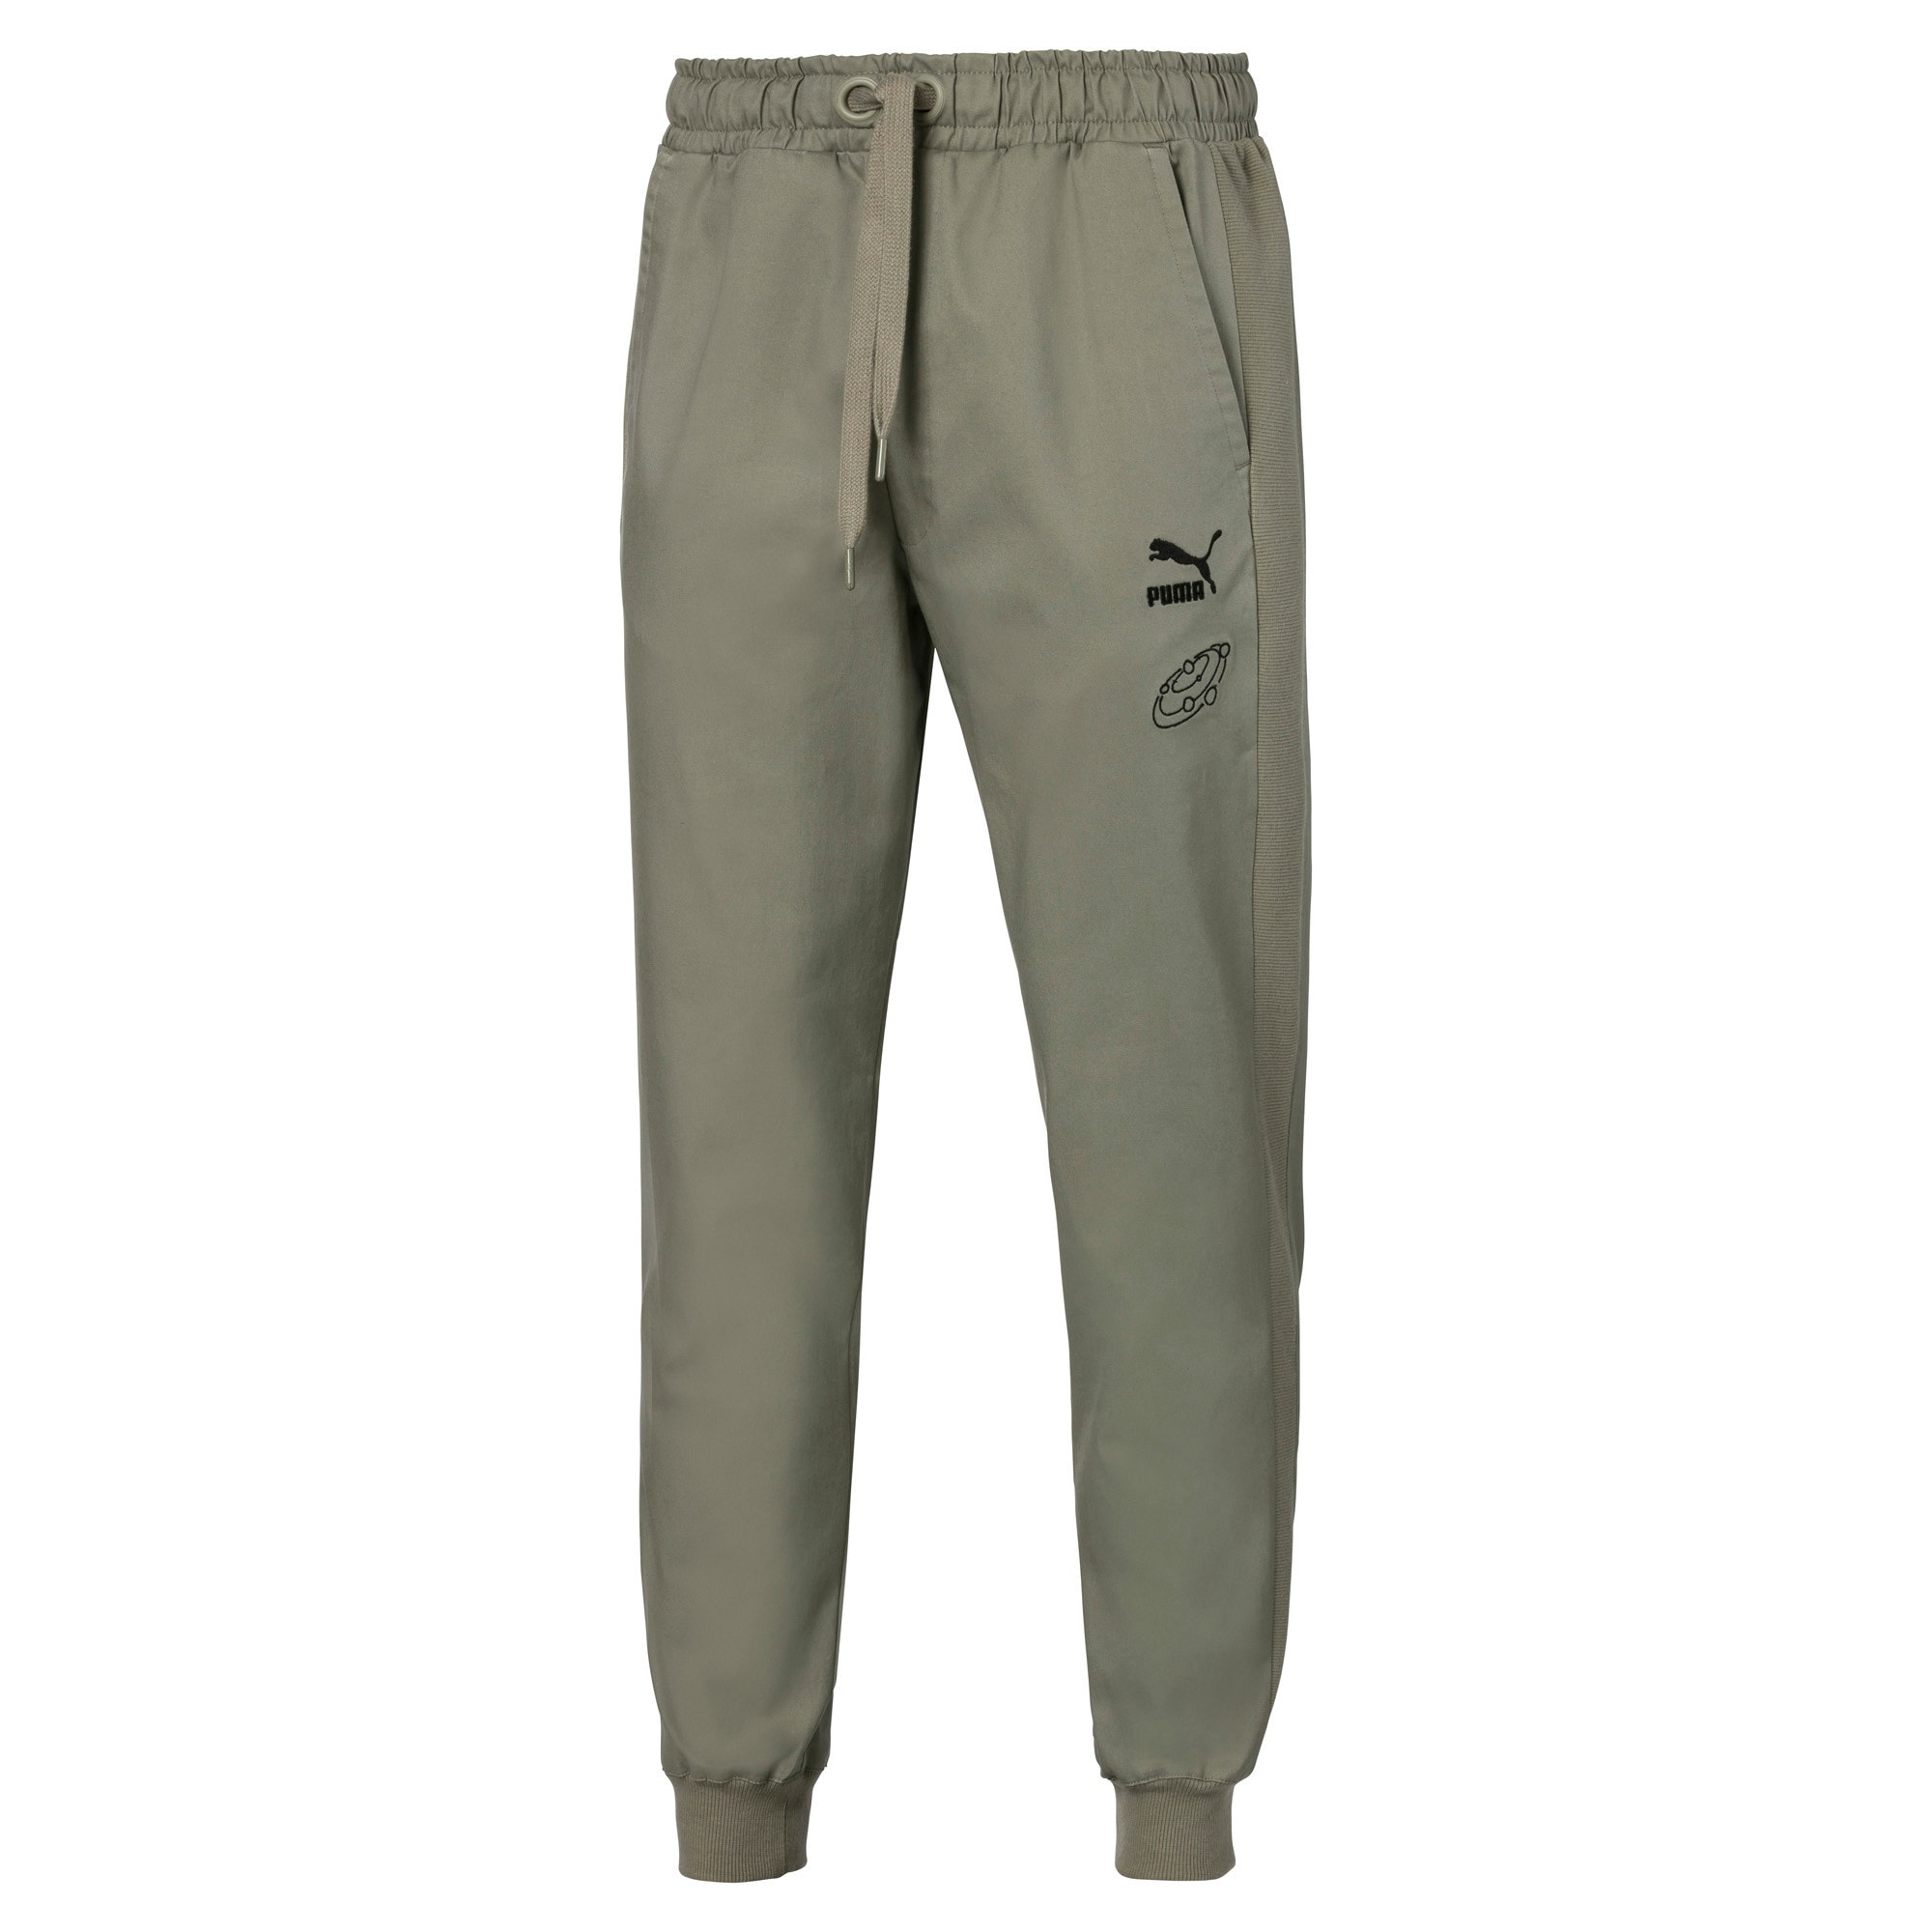 Thumbnail 1 of PUMA x TYAKASHA Herren Gewebte Hose, Vetiver, medium